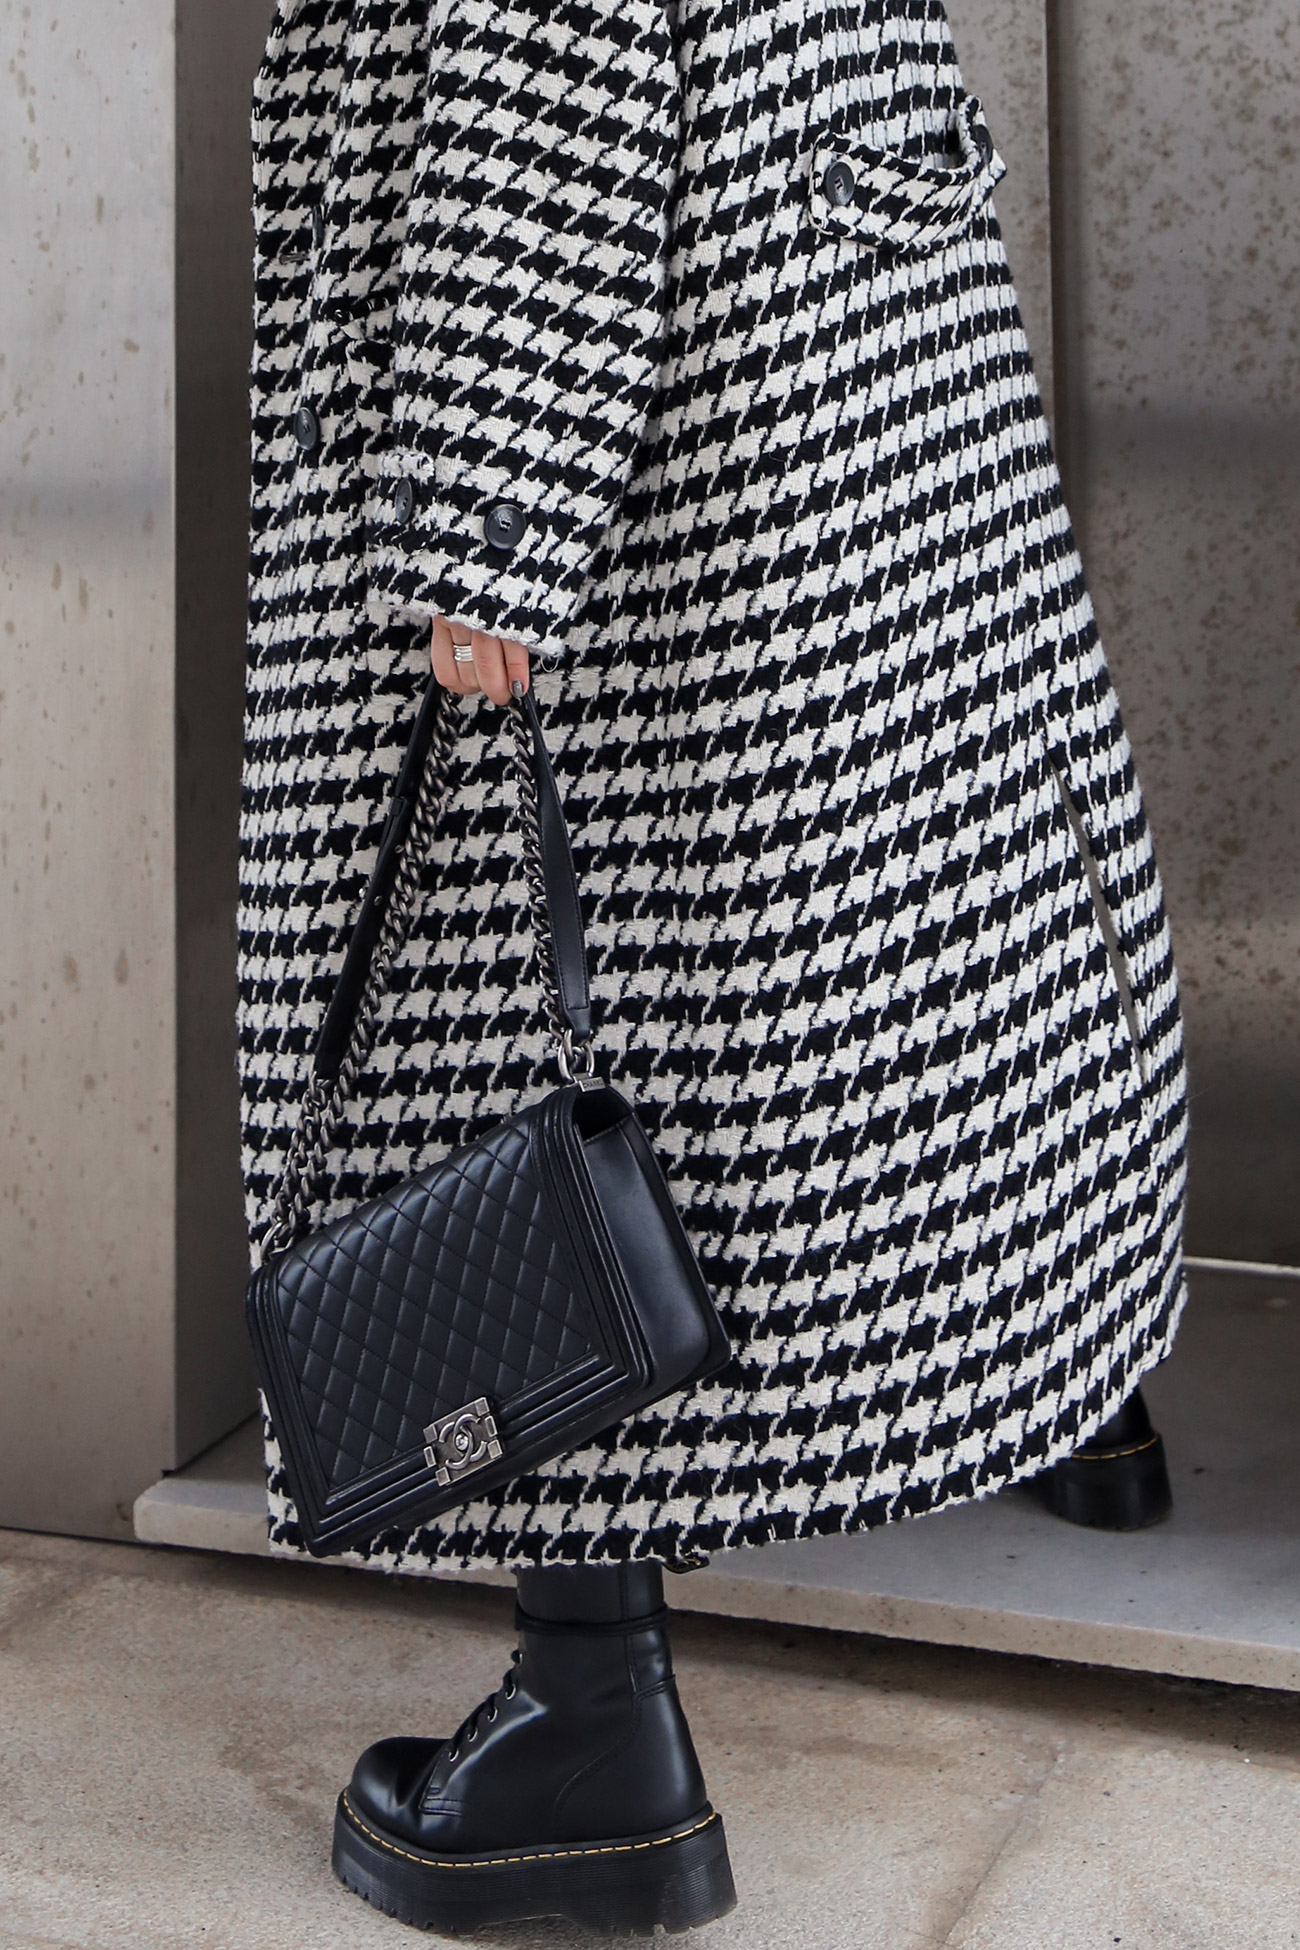 Outfit details with houndstooth coat Dr Martens boots and Chanel Boy Bag